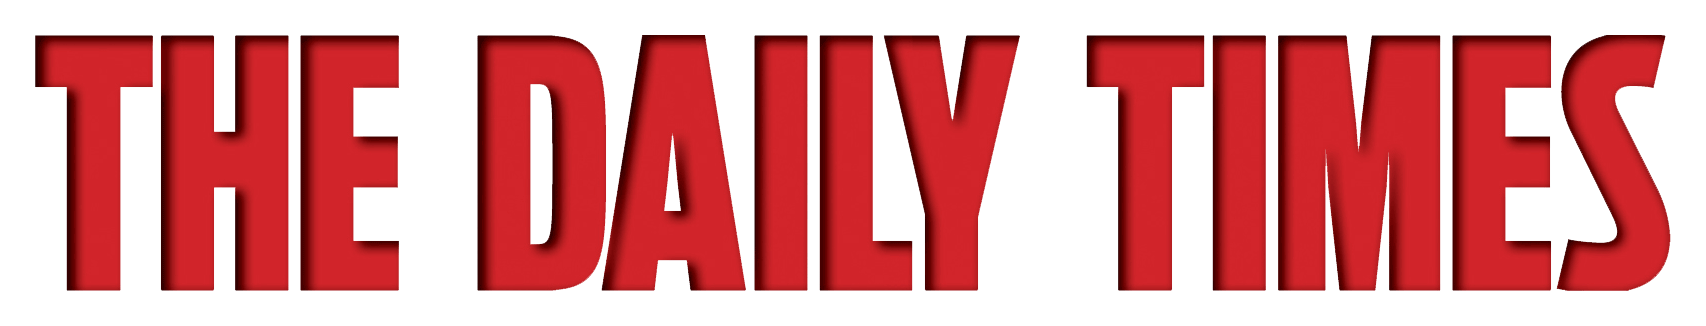 The Daily Times - Sports